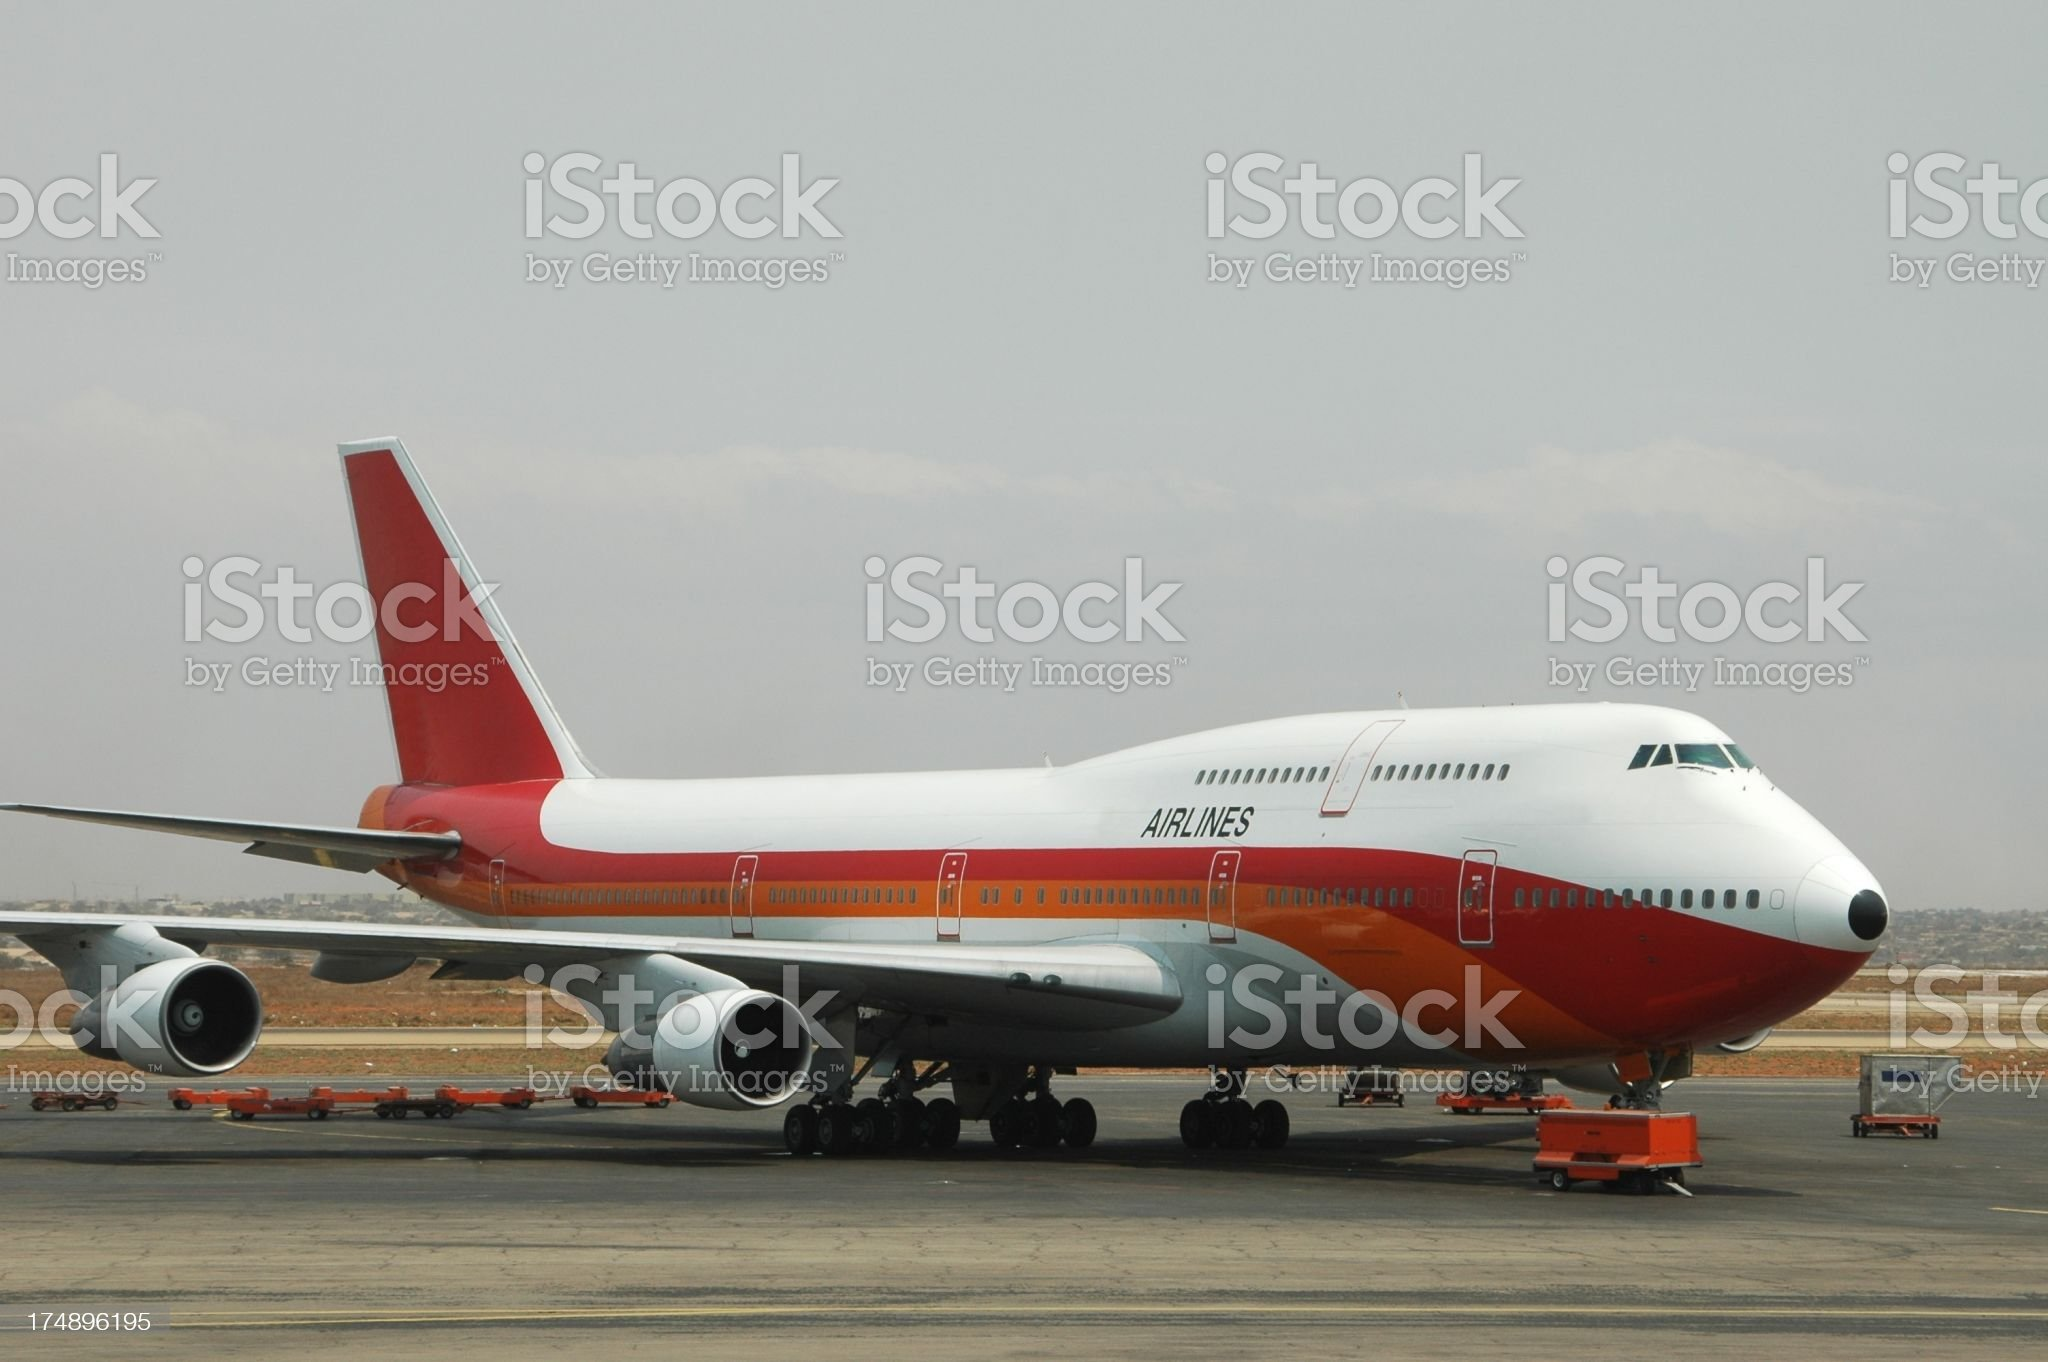 Ready for takeoff royalty-free stock photo